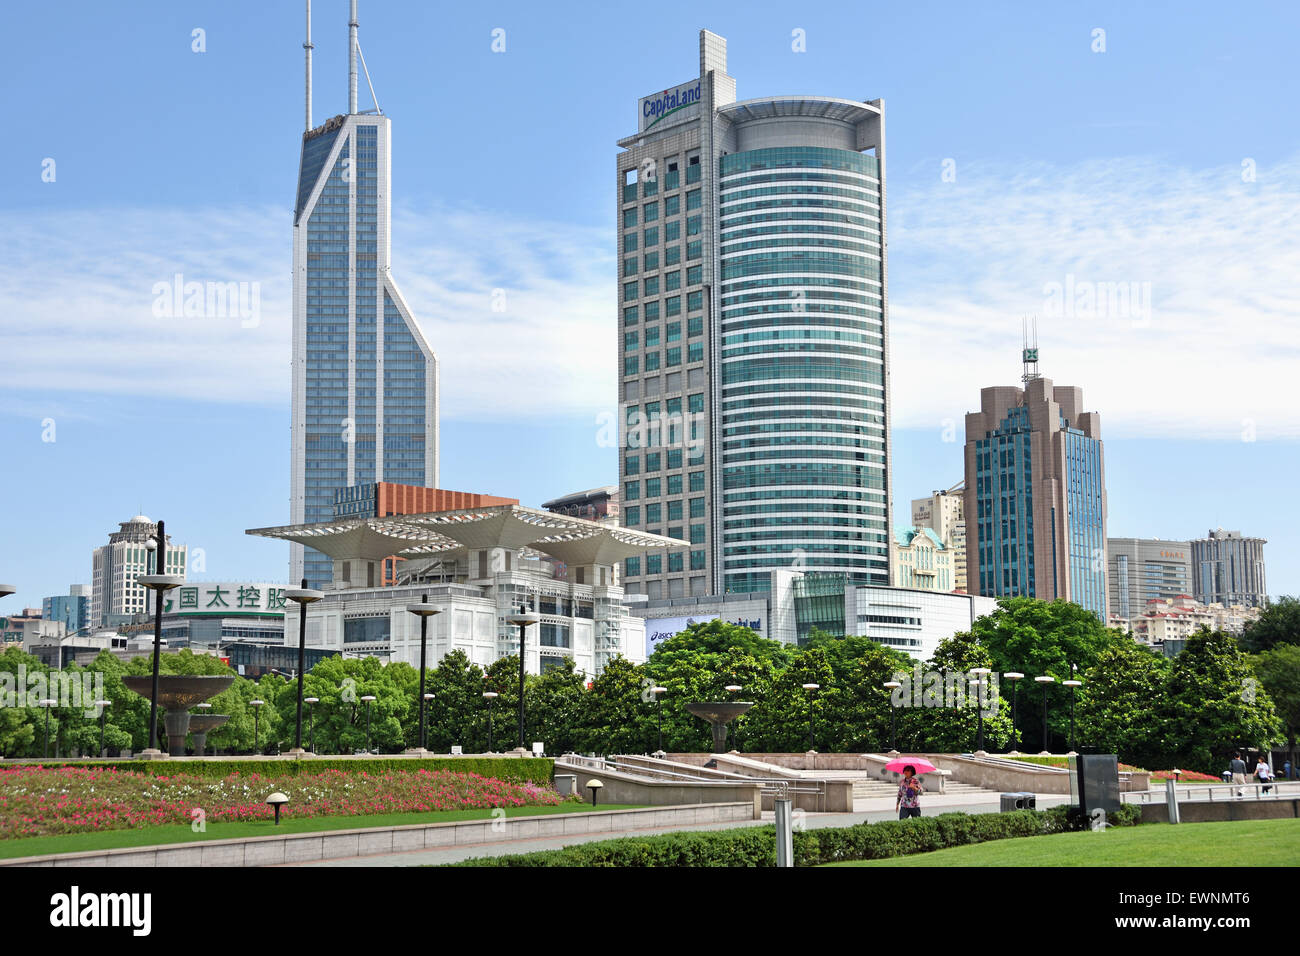 Shanghai Urban Planning Exhibition Renmin Park ( People's Square ) district Huangpu  China Chinese - Stock Image